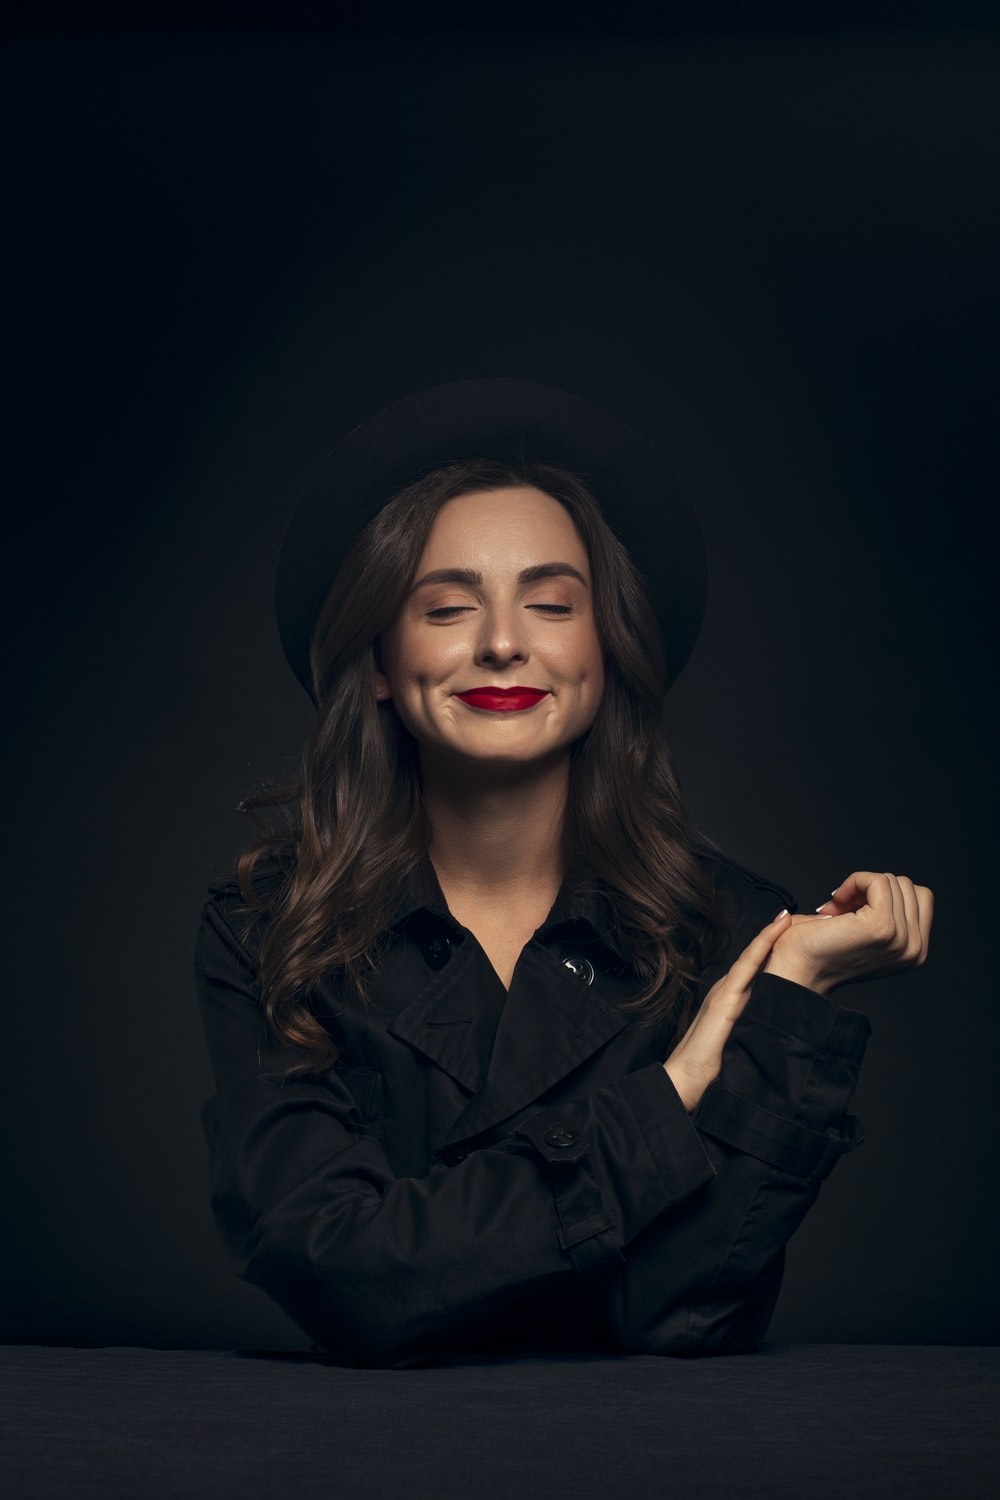 Black Background Girl Pictures Download Free Images On Unsplash Great quality, free and easy to download under this boring piece of text, we present you our greatest black wallpapers that we've gathered along our journey to beautify your desktop or. black background girl pictures